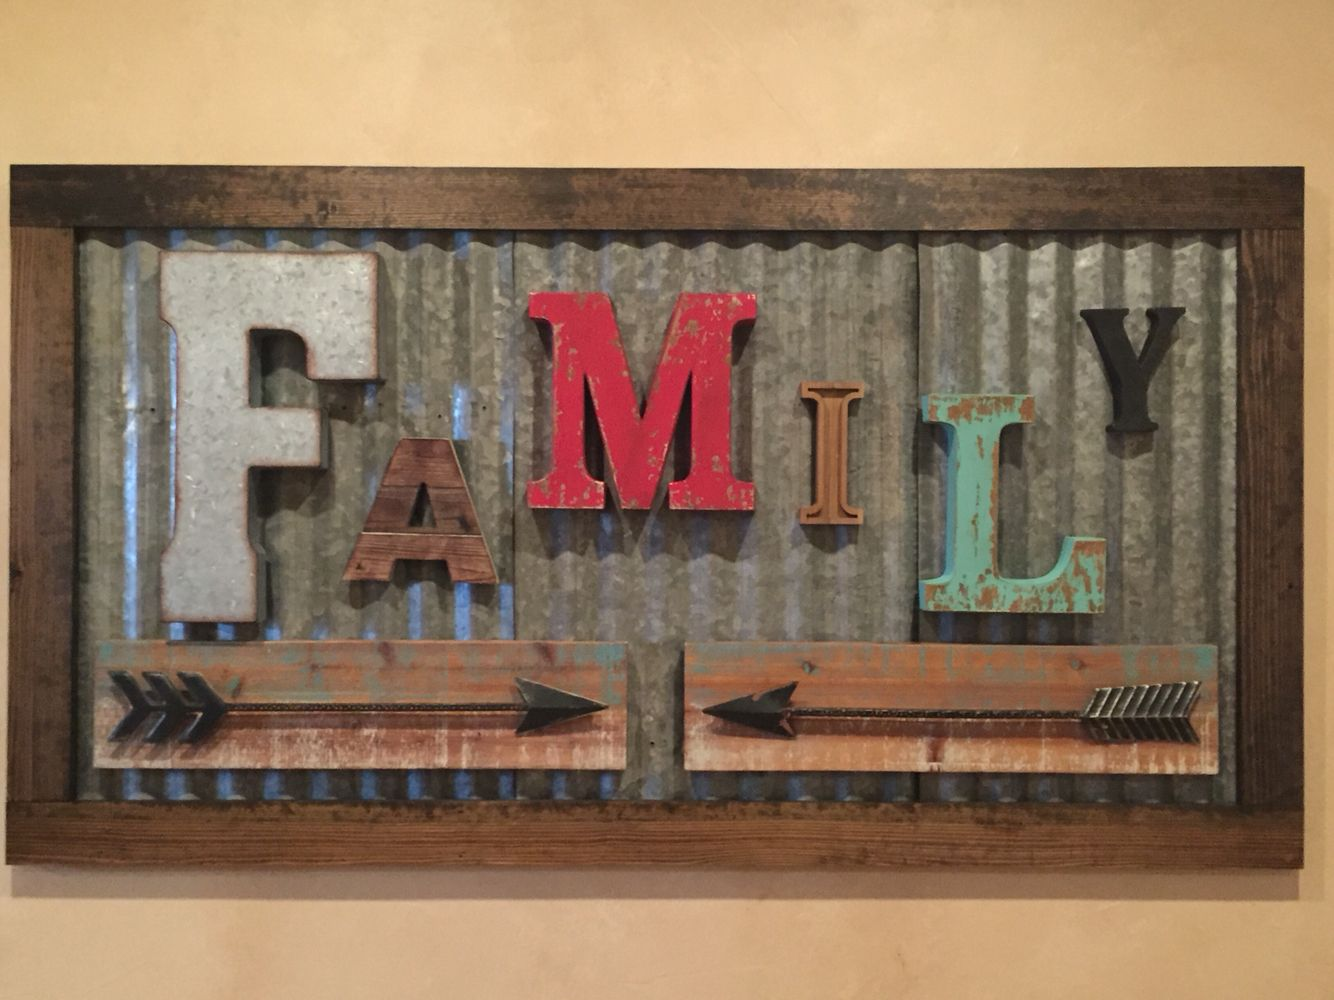 Rustic Family Sign Made From Vintage Letters And Old Corrugated Metal 6 Wide By 3 Tall Homemade Home Decor Rustic Family Sign Wood Pallet Signs